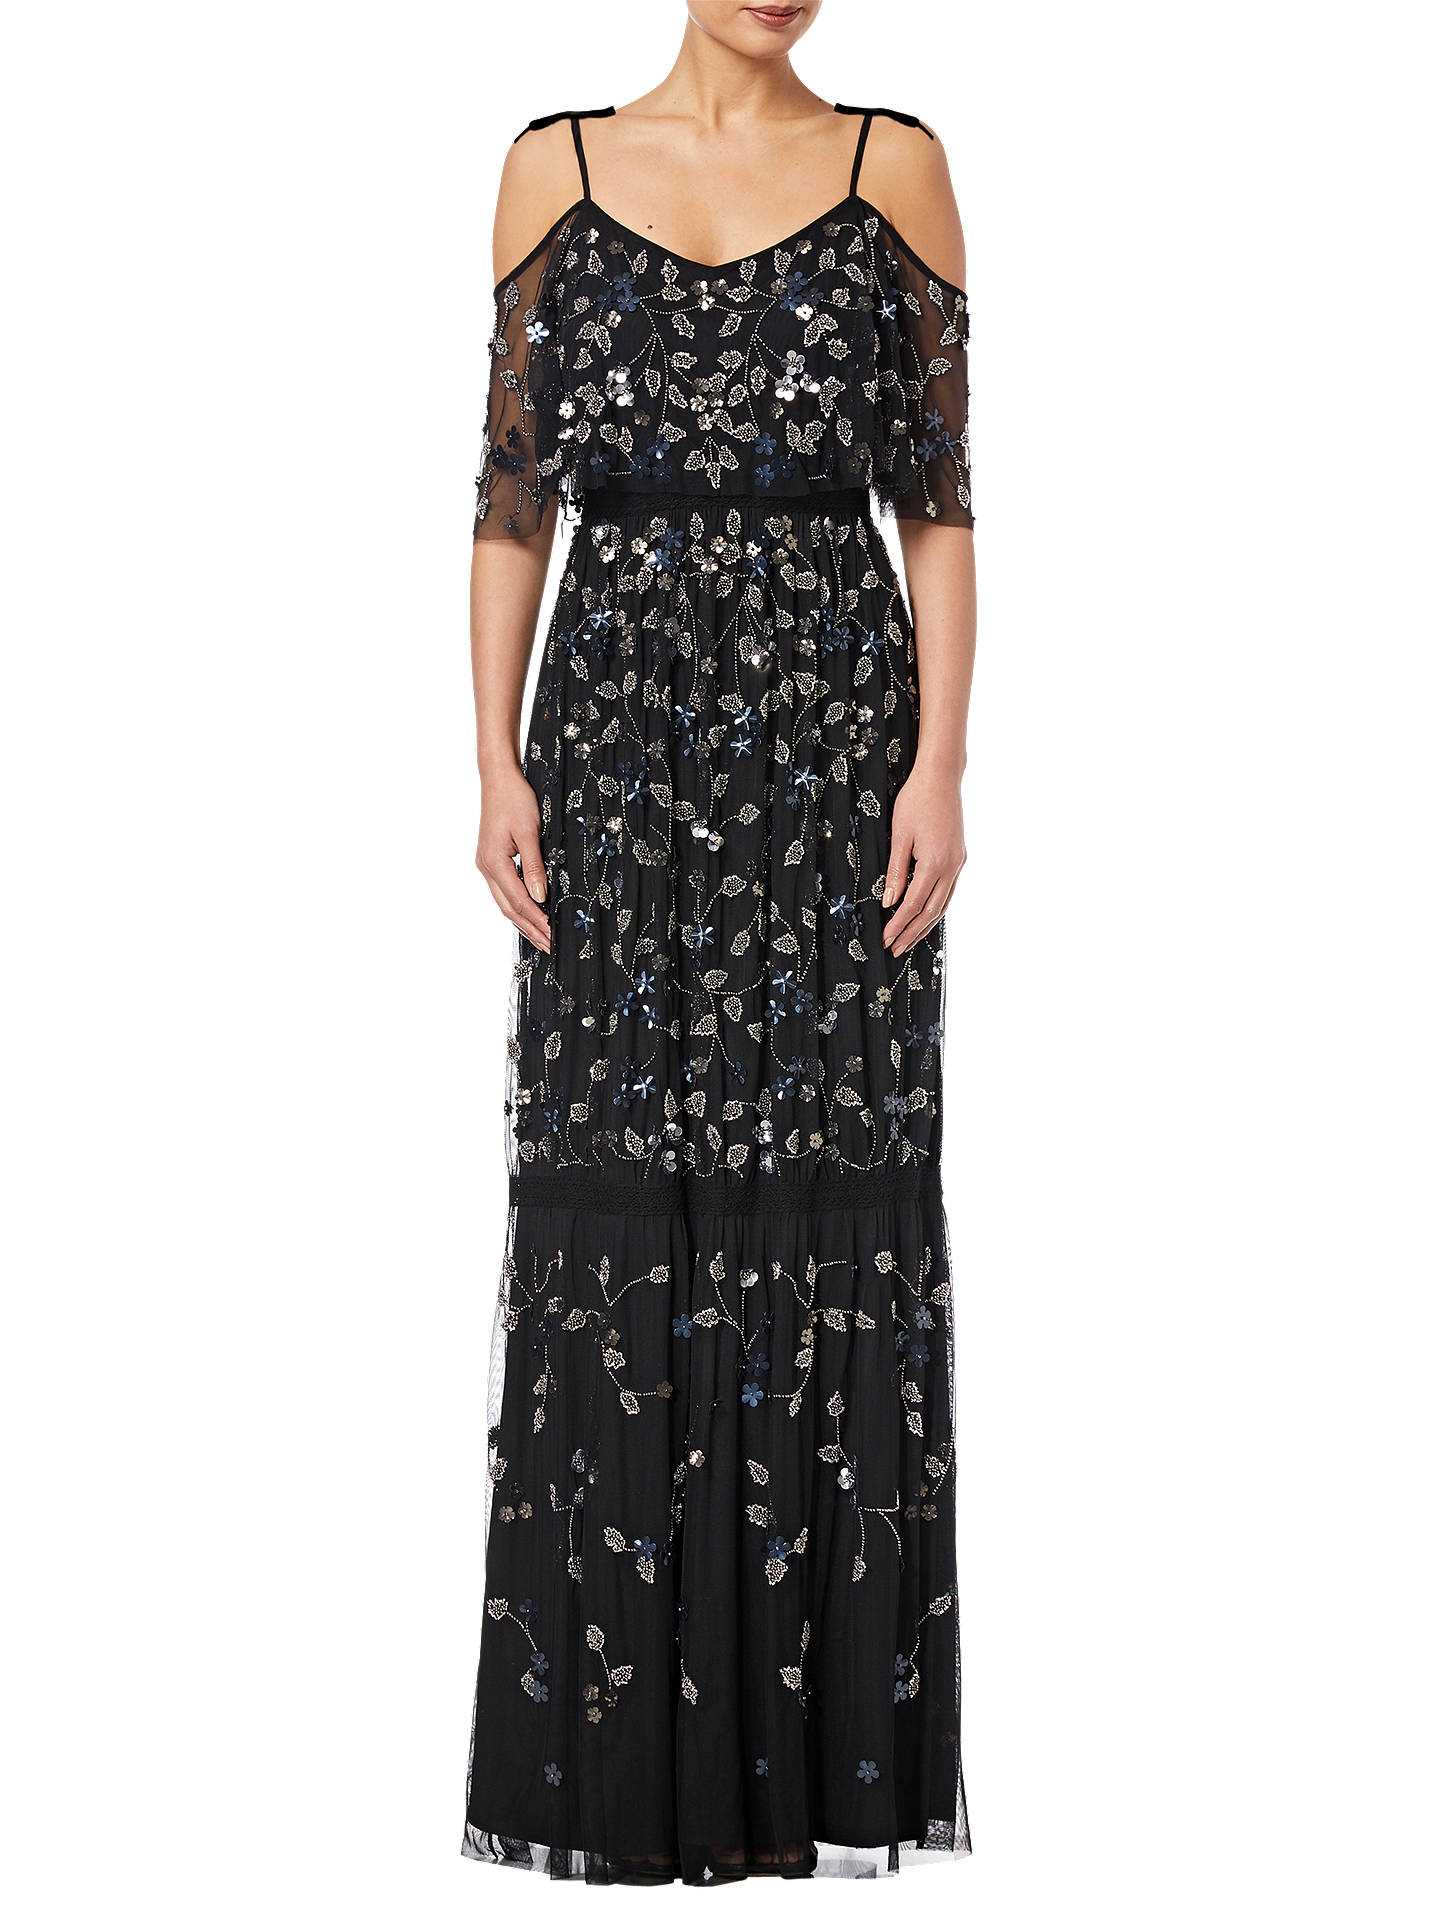 BuyAdrianna Papell Beaded Long Dress, Black, 8 Online at johnlewis.com